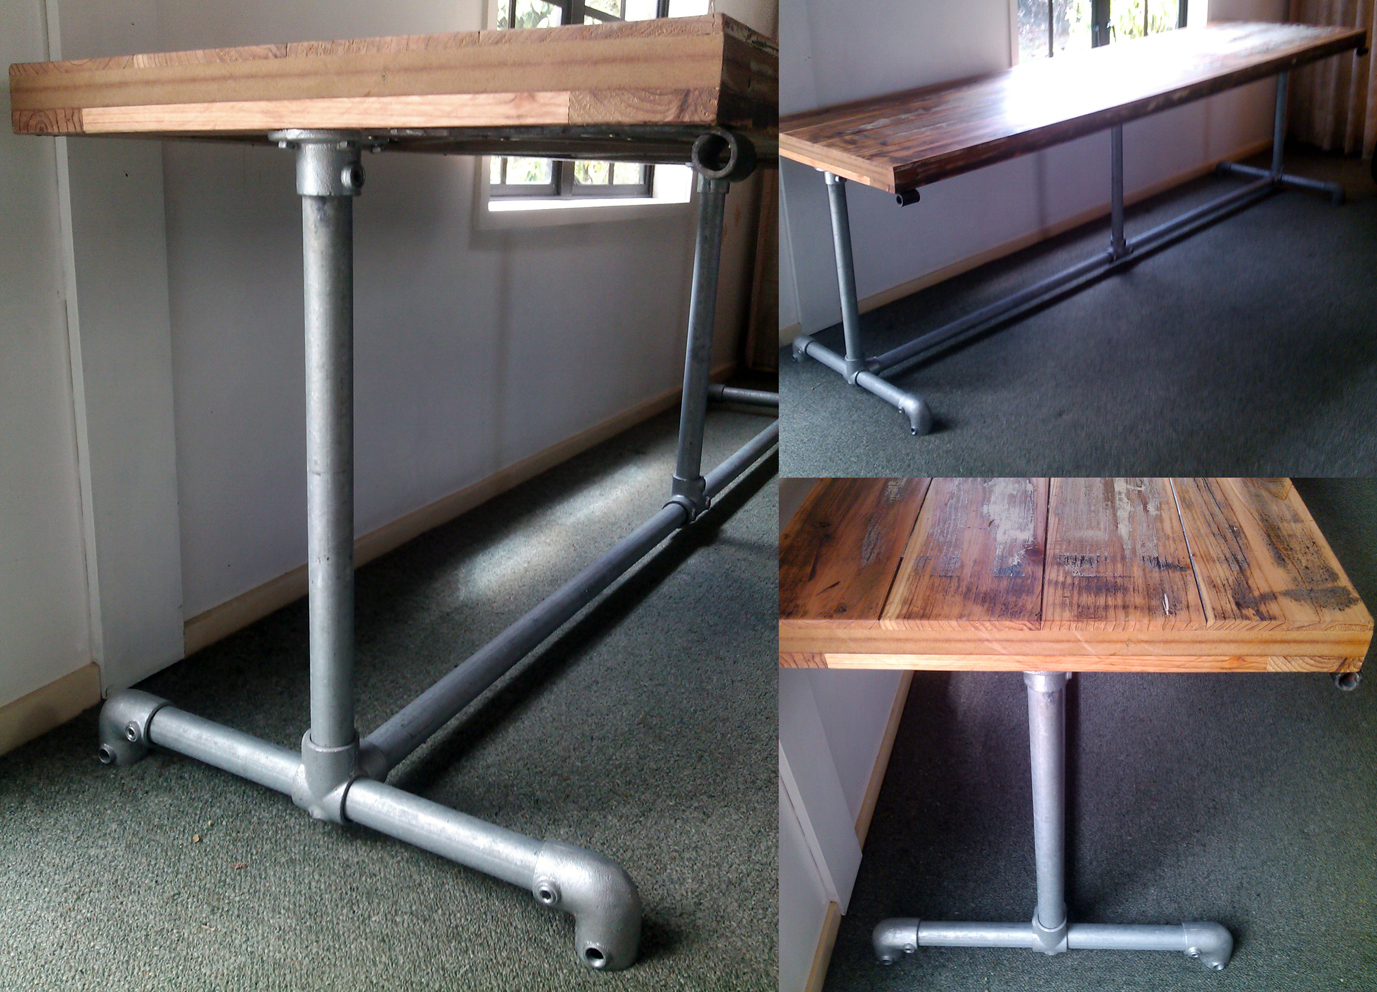 INDUSTRIAL DINING TABLE timber top amp pipe legs Felt : o from felt.co.nz size 1377 x 992 jpeg 1198kB